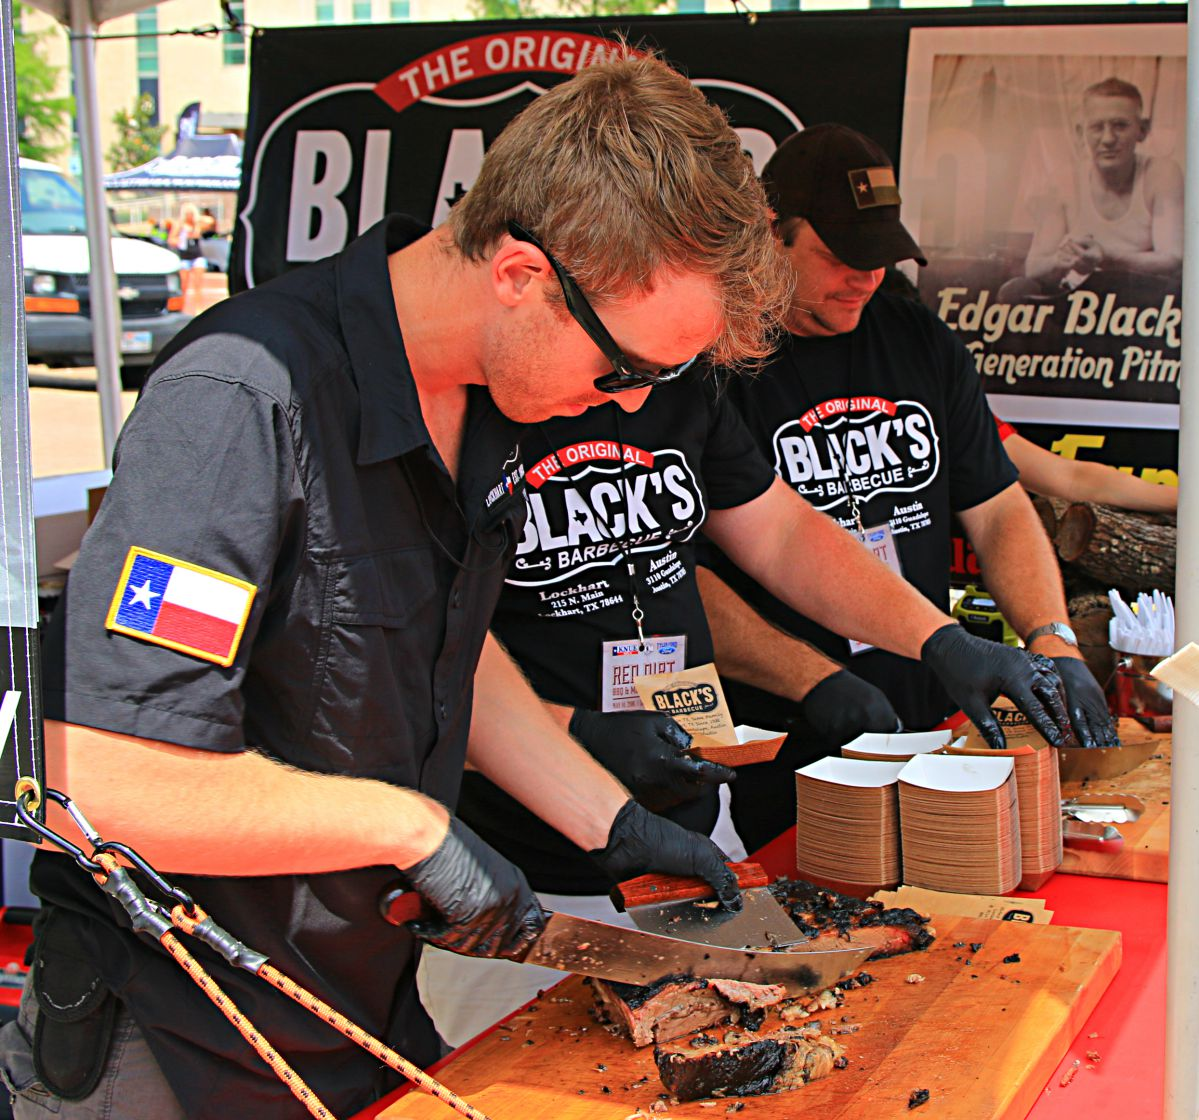 Fourth generation pitmaster Barrett Black slices brisket while an image of great grandfather Edgar Black Sr. watches over him.